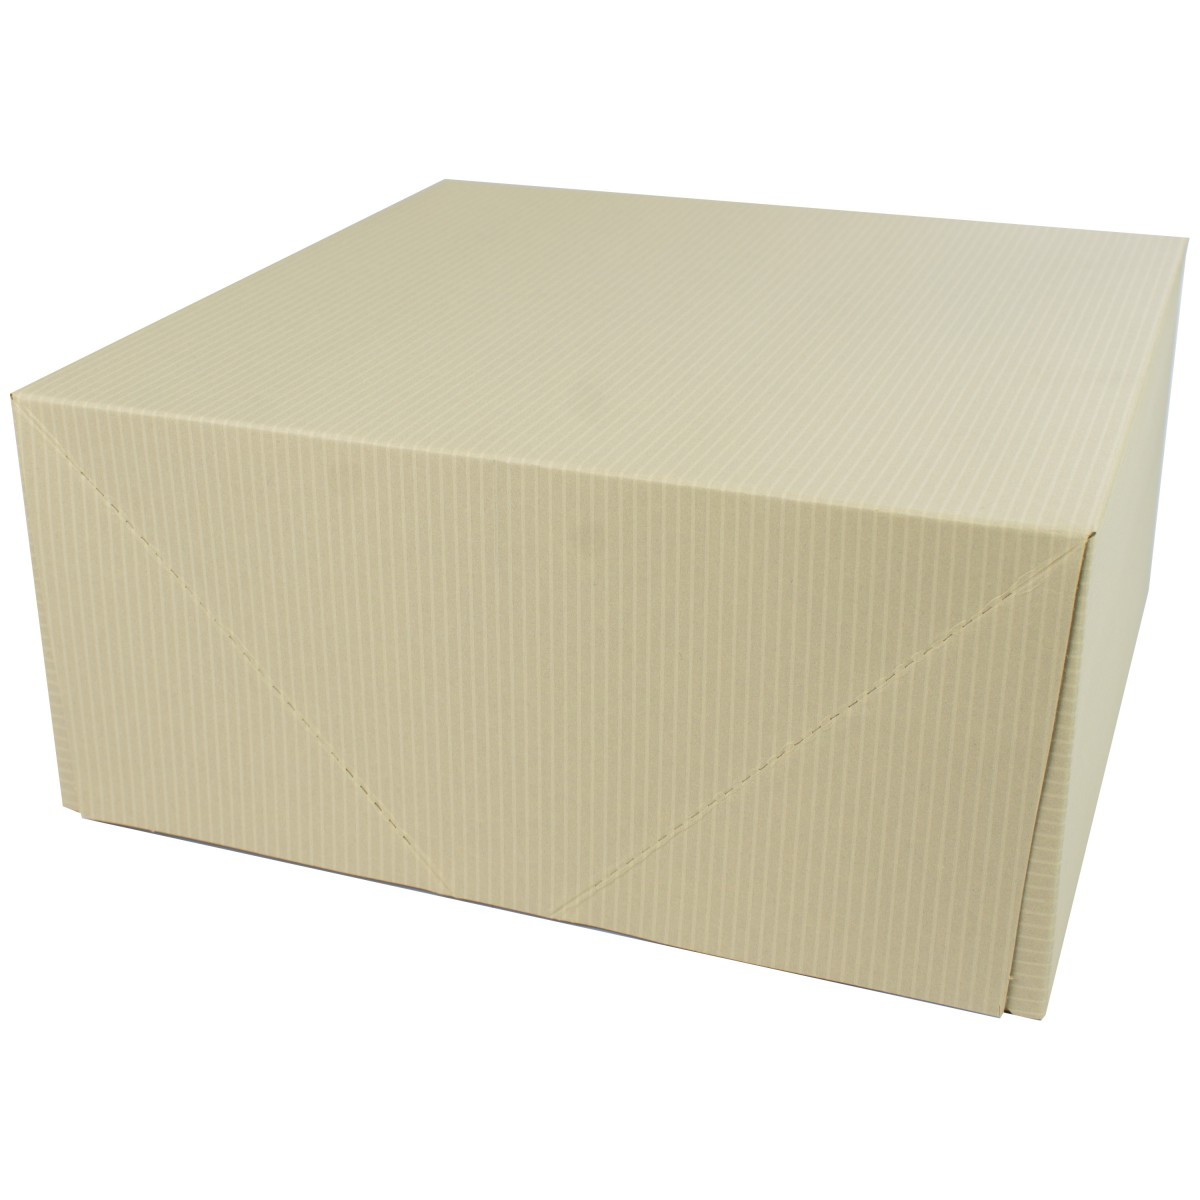 12 x 12 x 5.5 OATMEAL TINTED TWO-PIECE GIFT BOXES